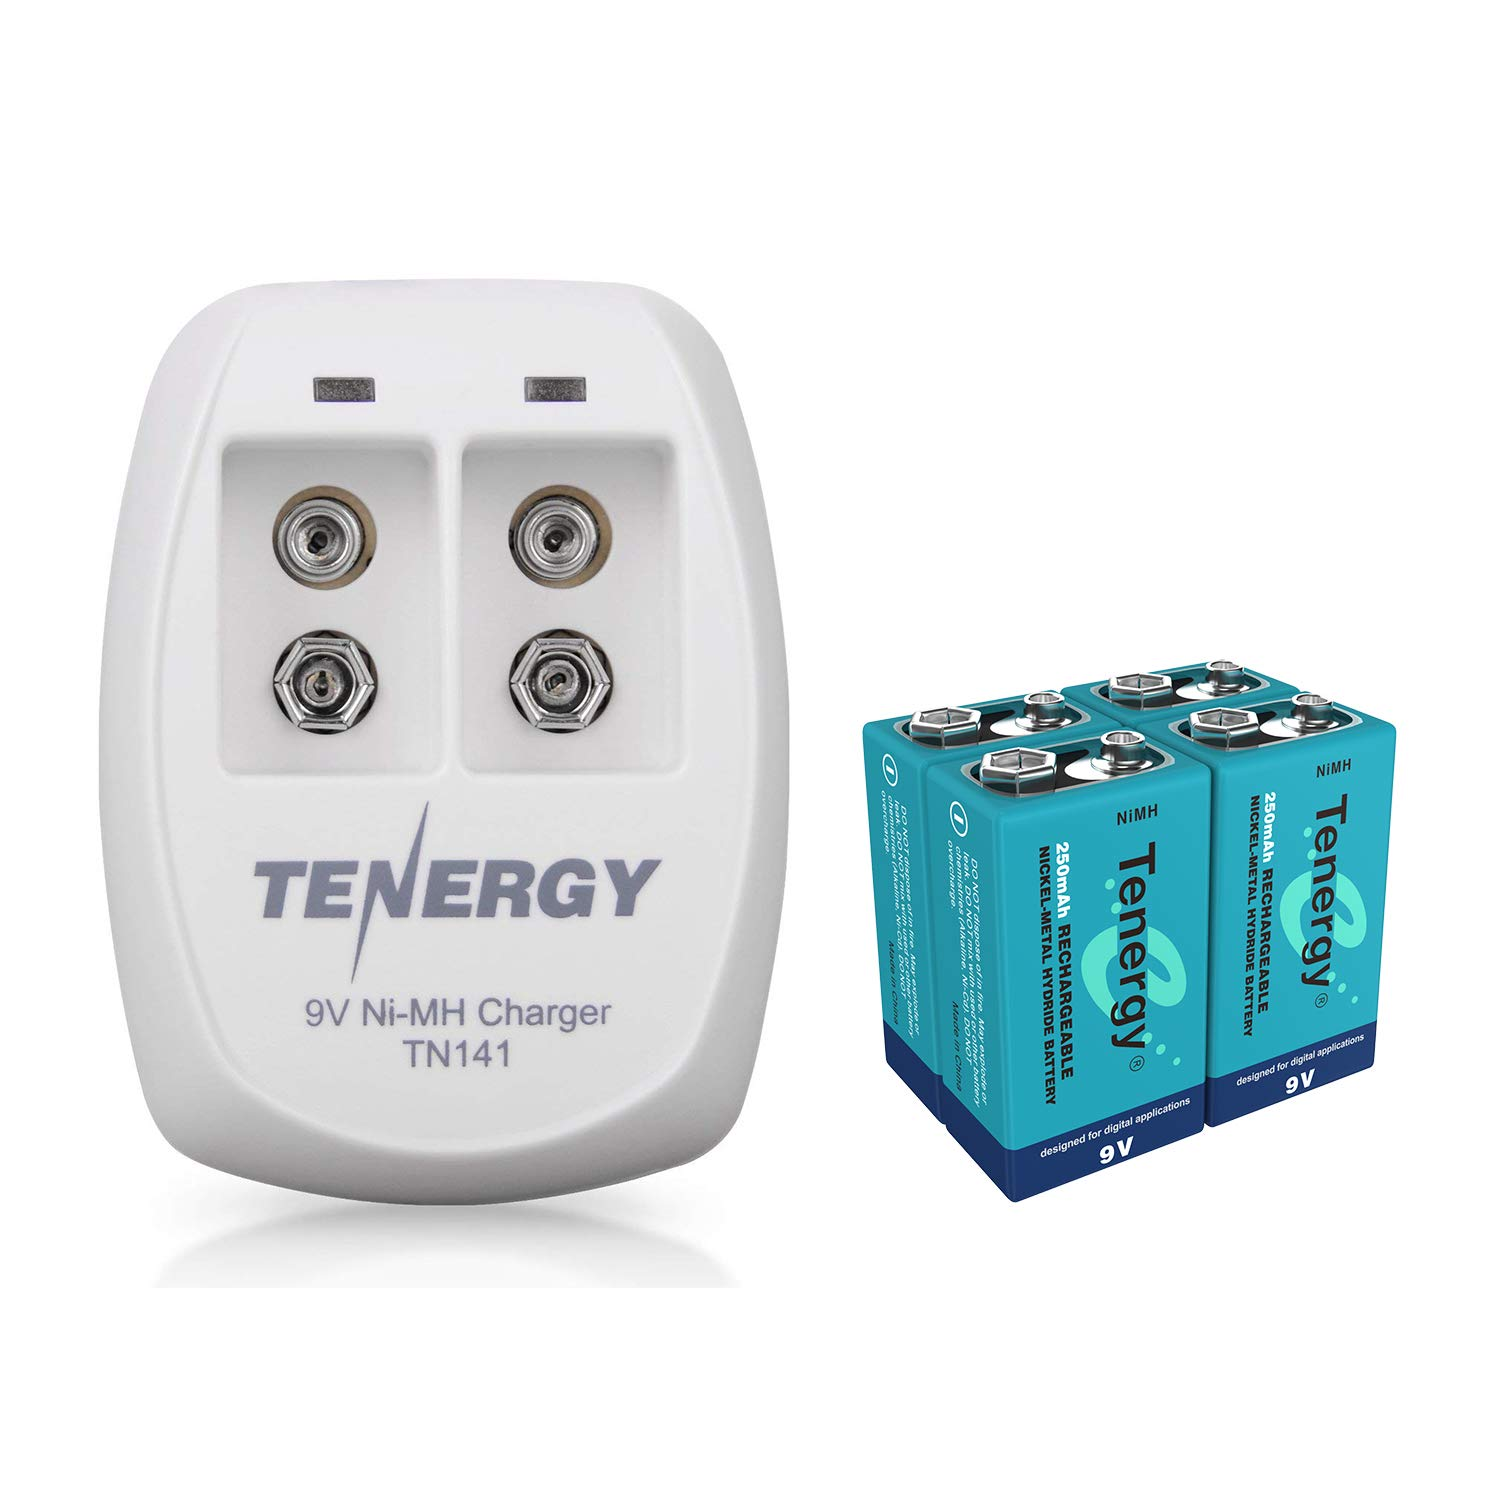 Tenergy 9V Battery Rechargeable 250mAh 4PCS NiMH Square Battery with 2 Bay 9V Battery Charger for Smoke Alarm/Detector